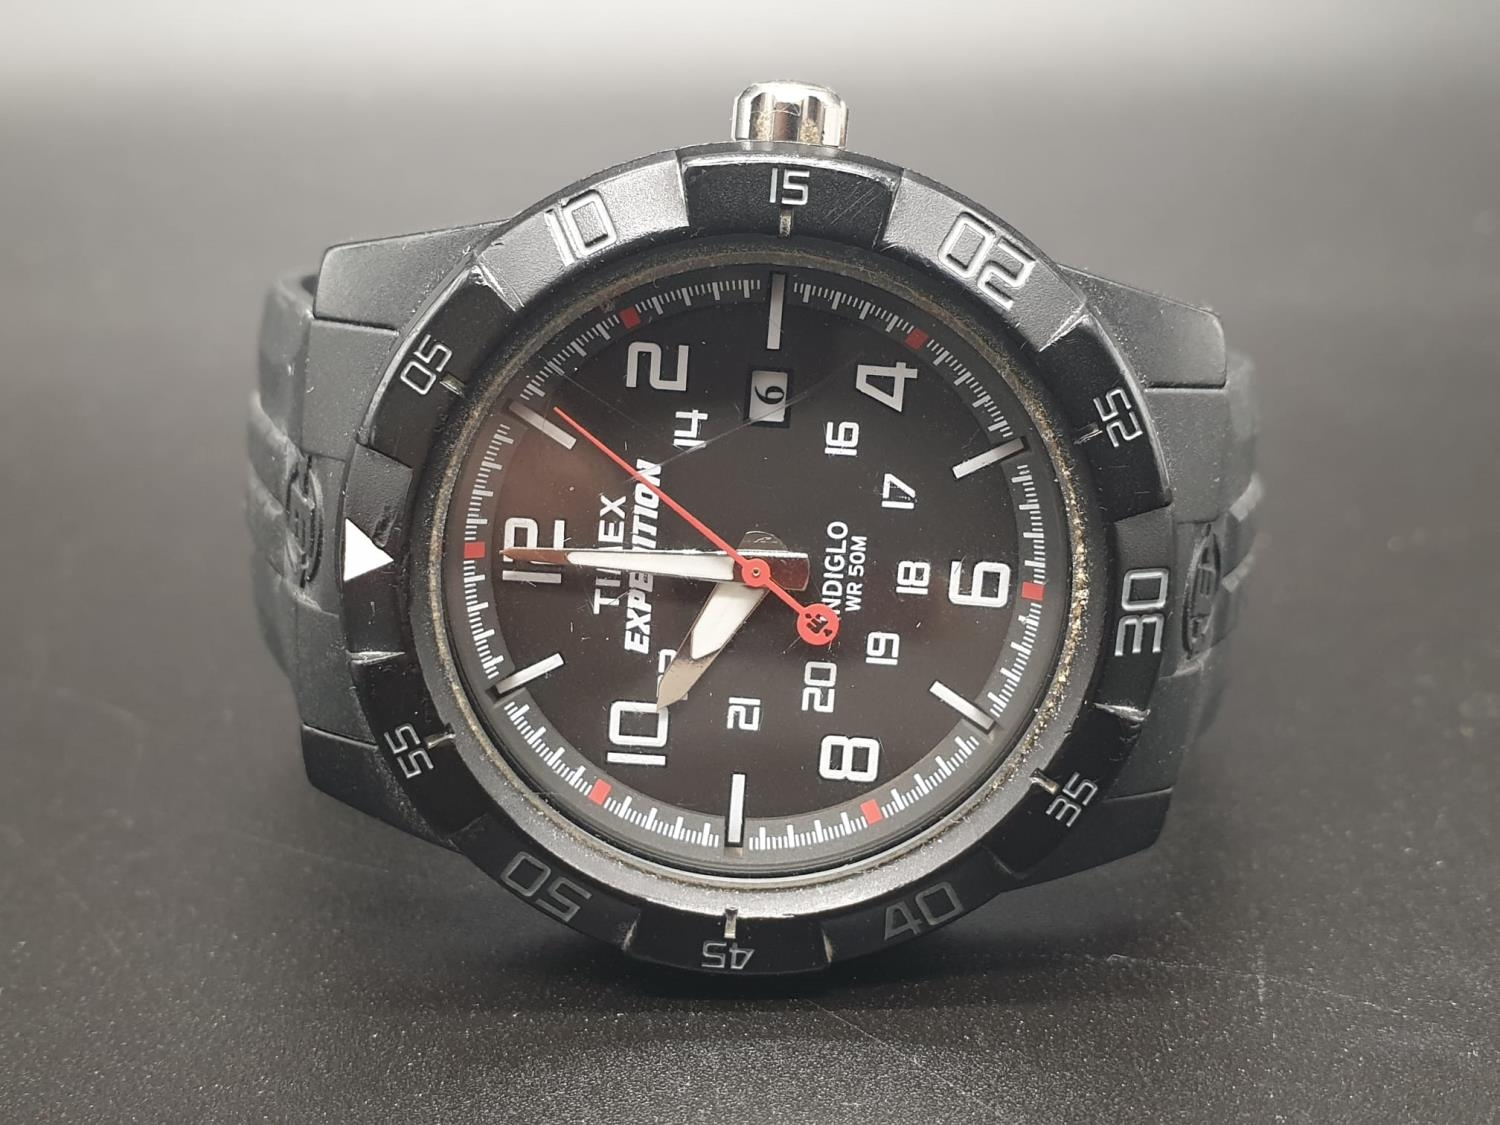 Timex Expedition Watch. Black rubber strap. Black dial. As found. - Image 3 of 9